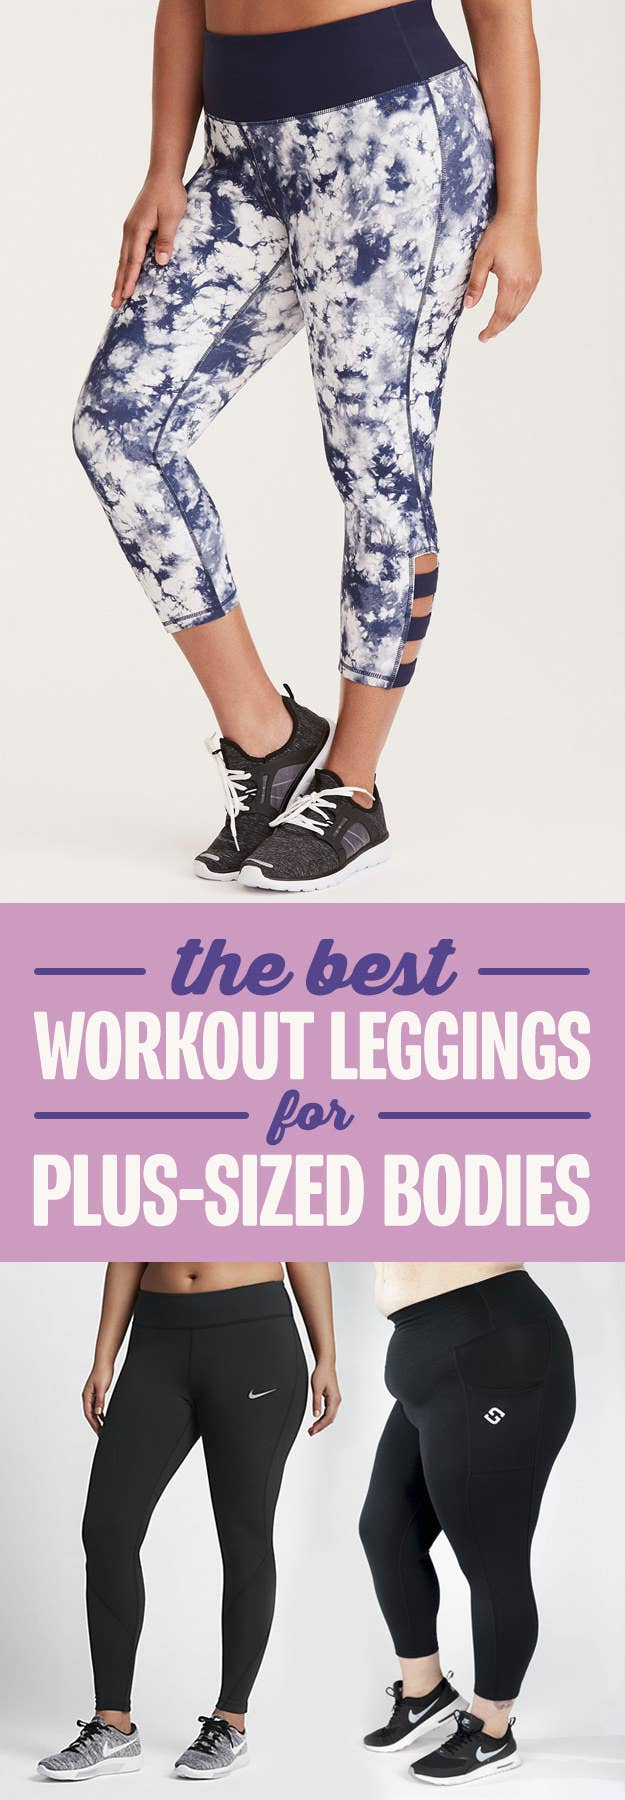 11da6b389c5 I Tried Six Pairs Of Plus-Size Workout Leggings To Find The Best Ones